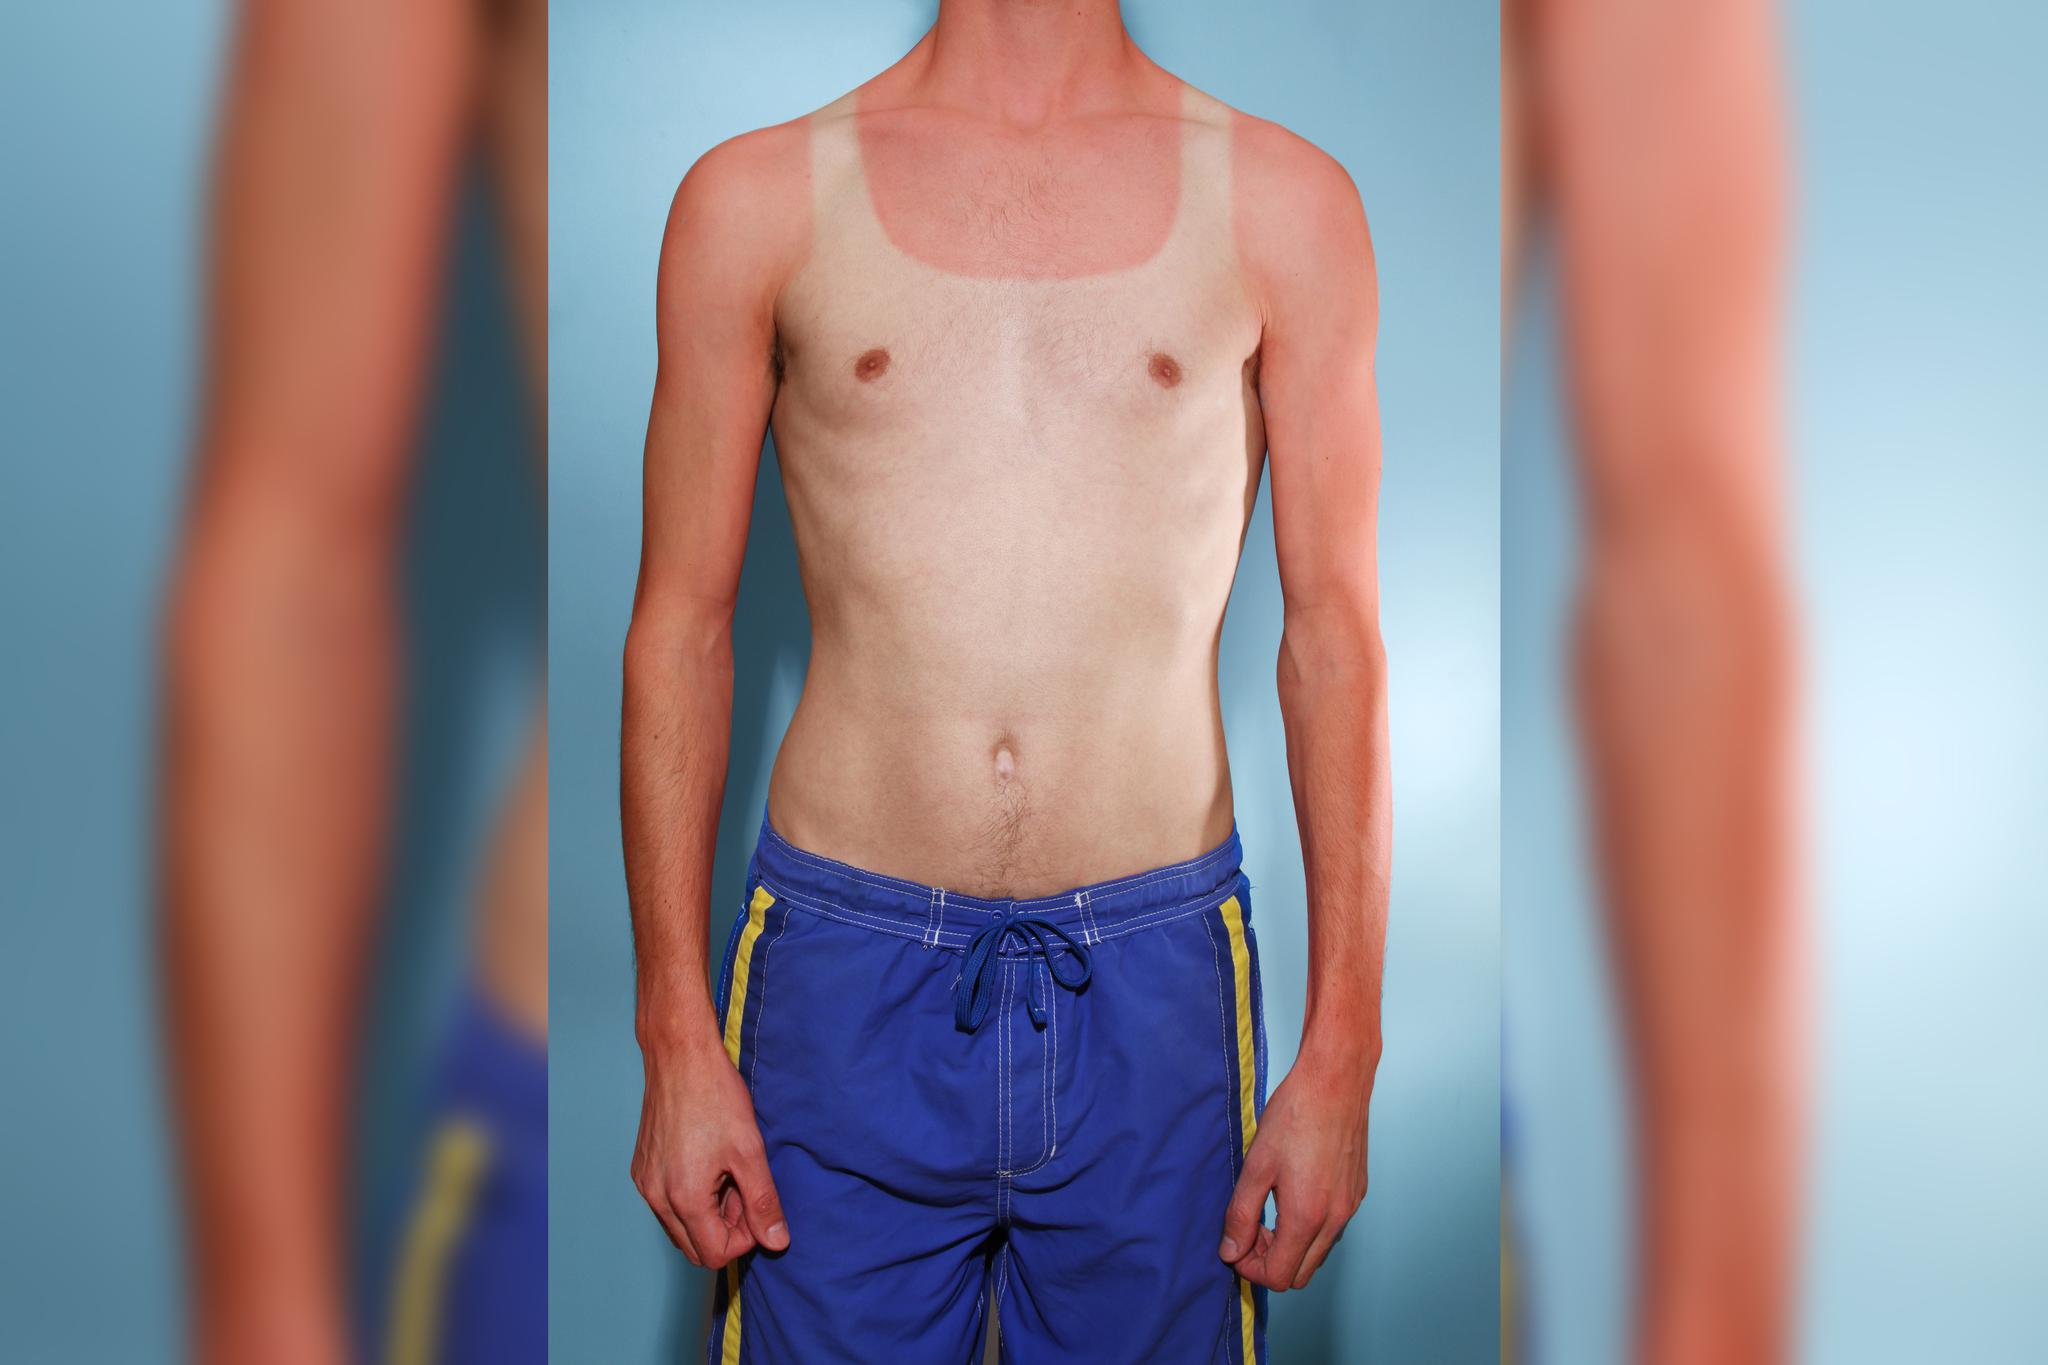 Researchers found that vitamin D decreased the symptoms of sunburn after the fact. But it's still best to wear sunscreen and protective clothing.